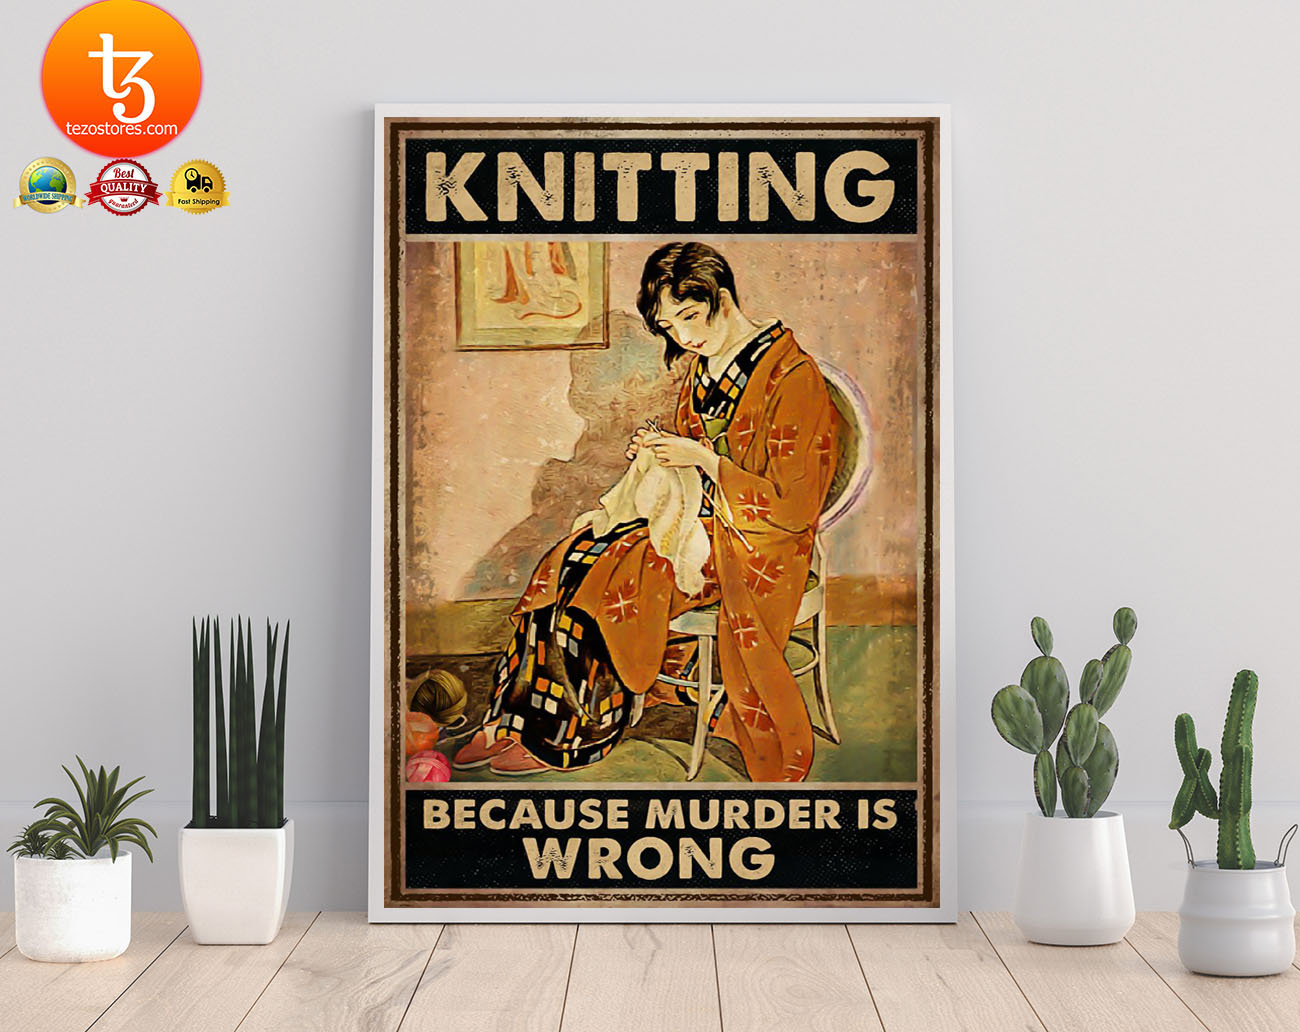 Knitting because murder is wrong poster 21